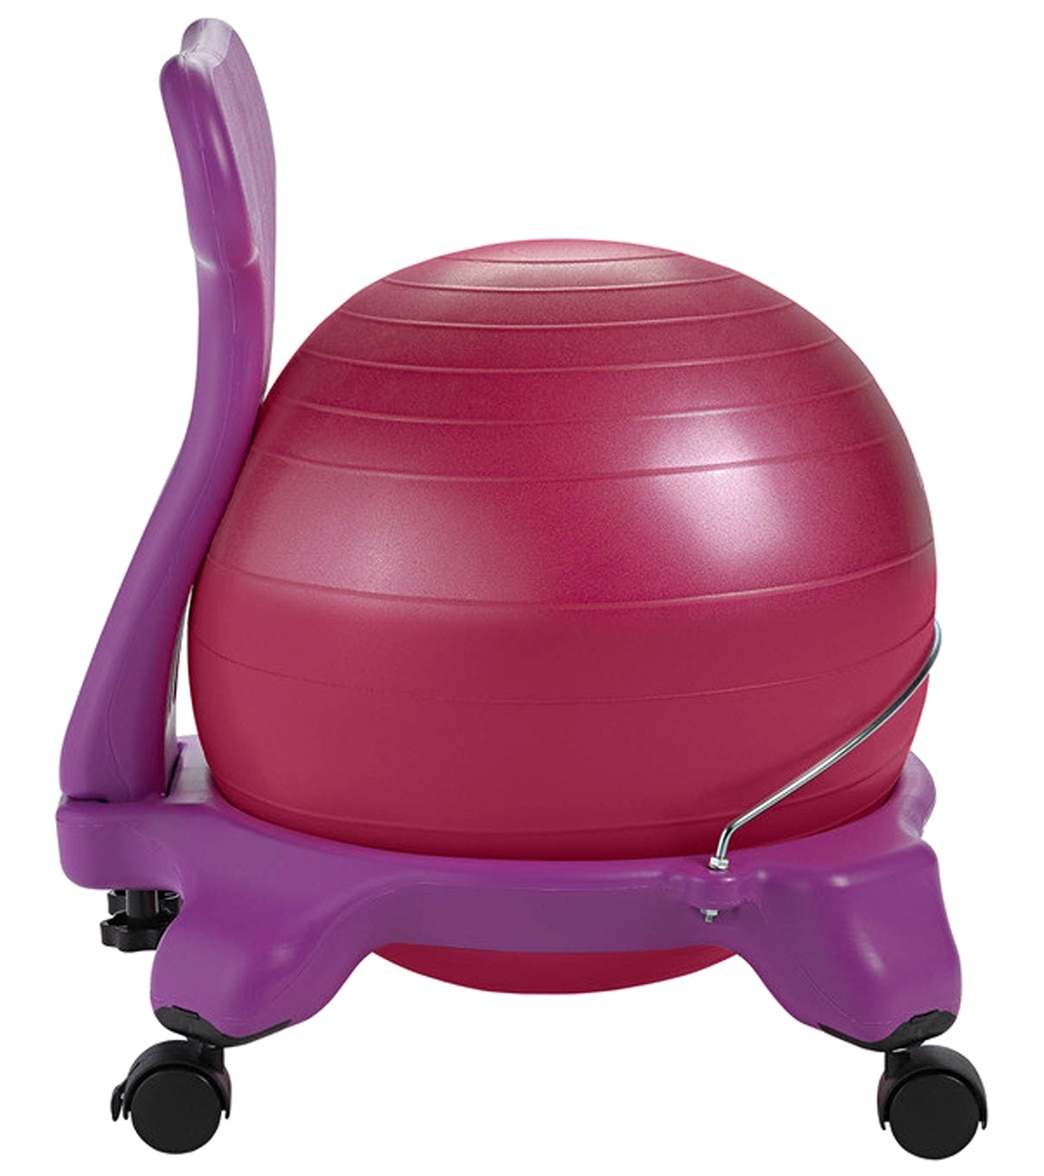 Gaiam Yoga Ball Chair Gaiam Kid 39s Yoga Balance Ball Chair At Swimoutlet